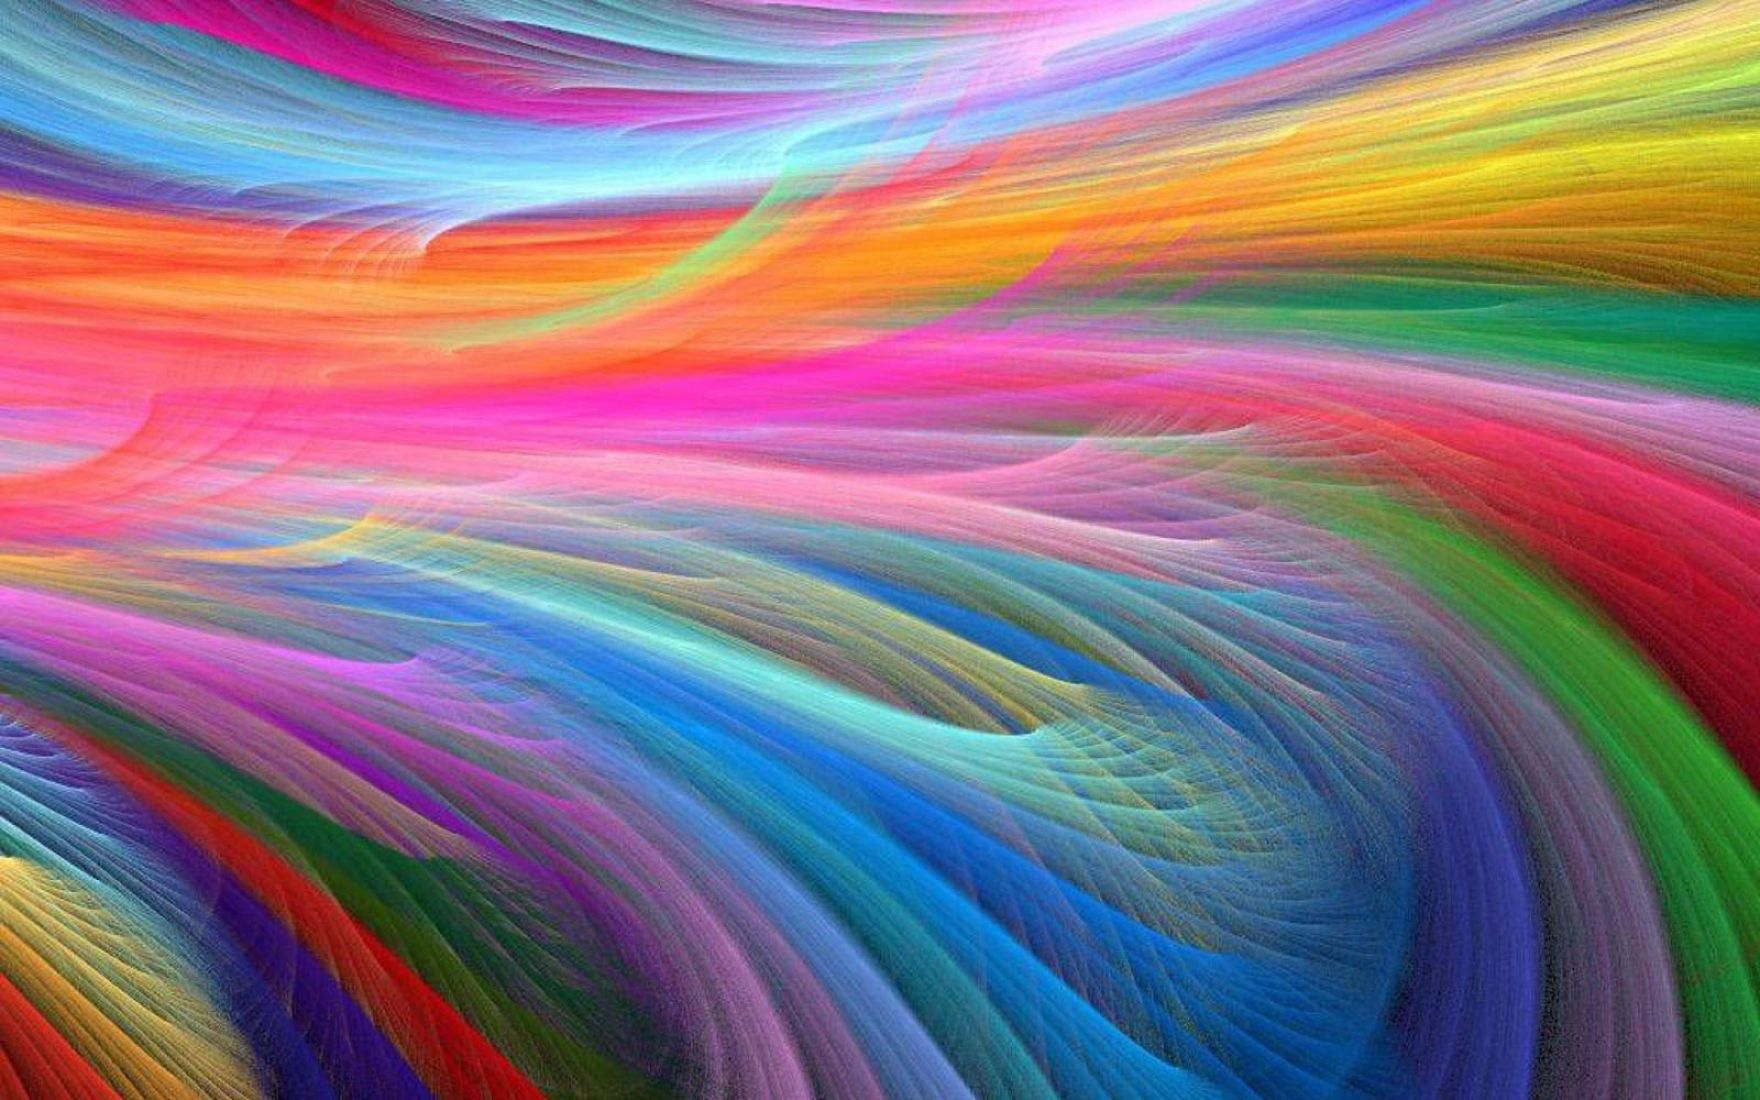 Download free HD Colorful Abstract Art Desktop Wallpaper, image